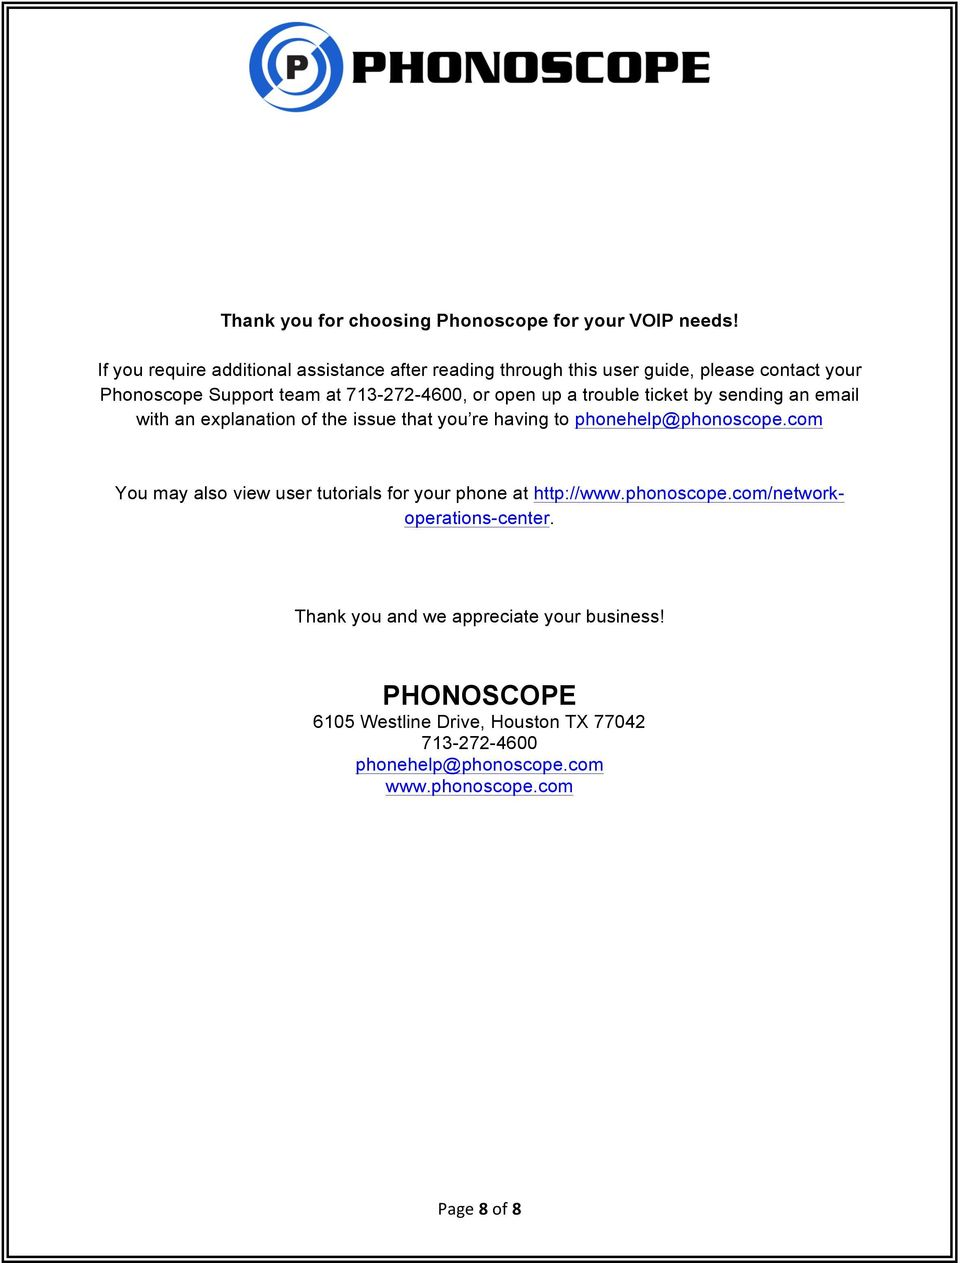 up a trouble ticket by sending an email with an explanation of the issue that you re having to phonehelp@phonoscope.